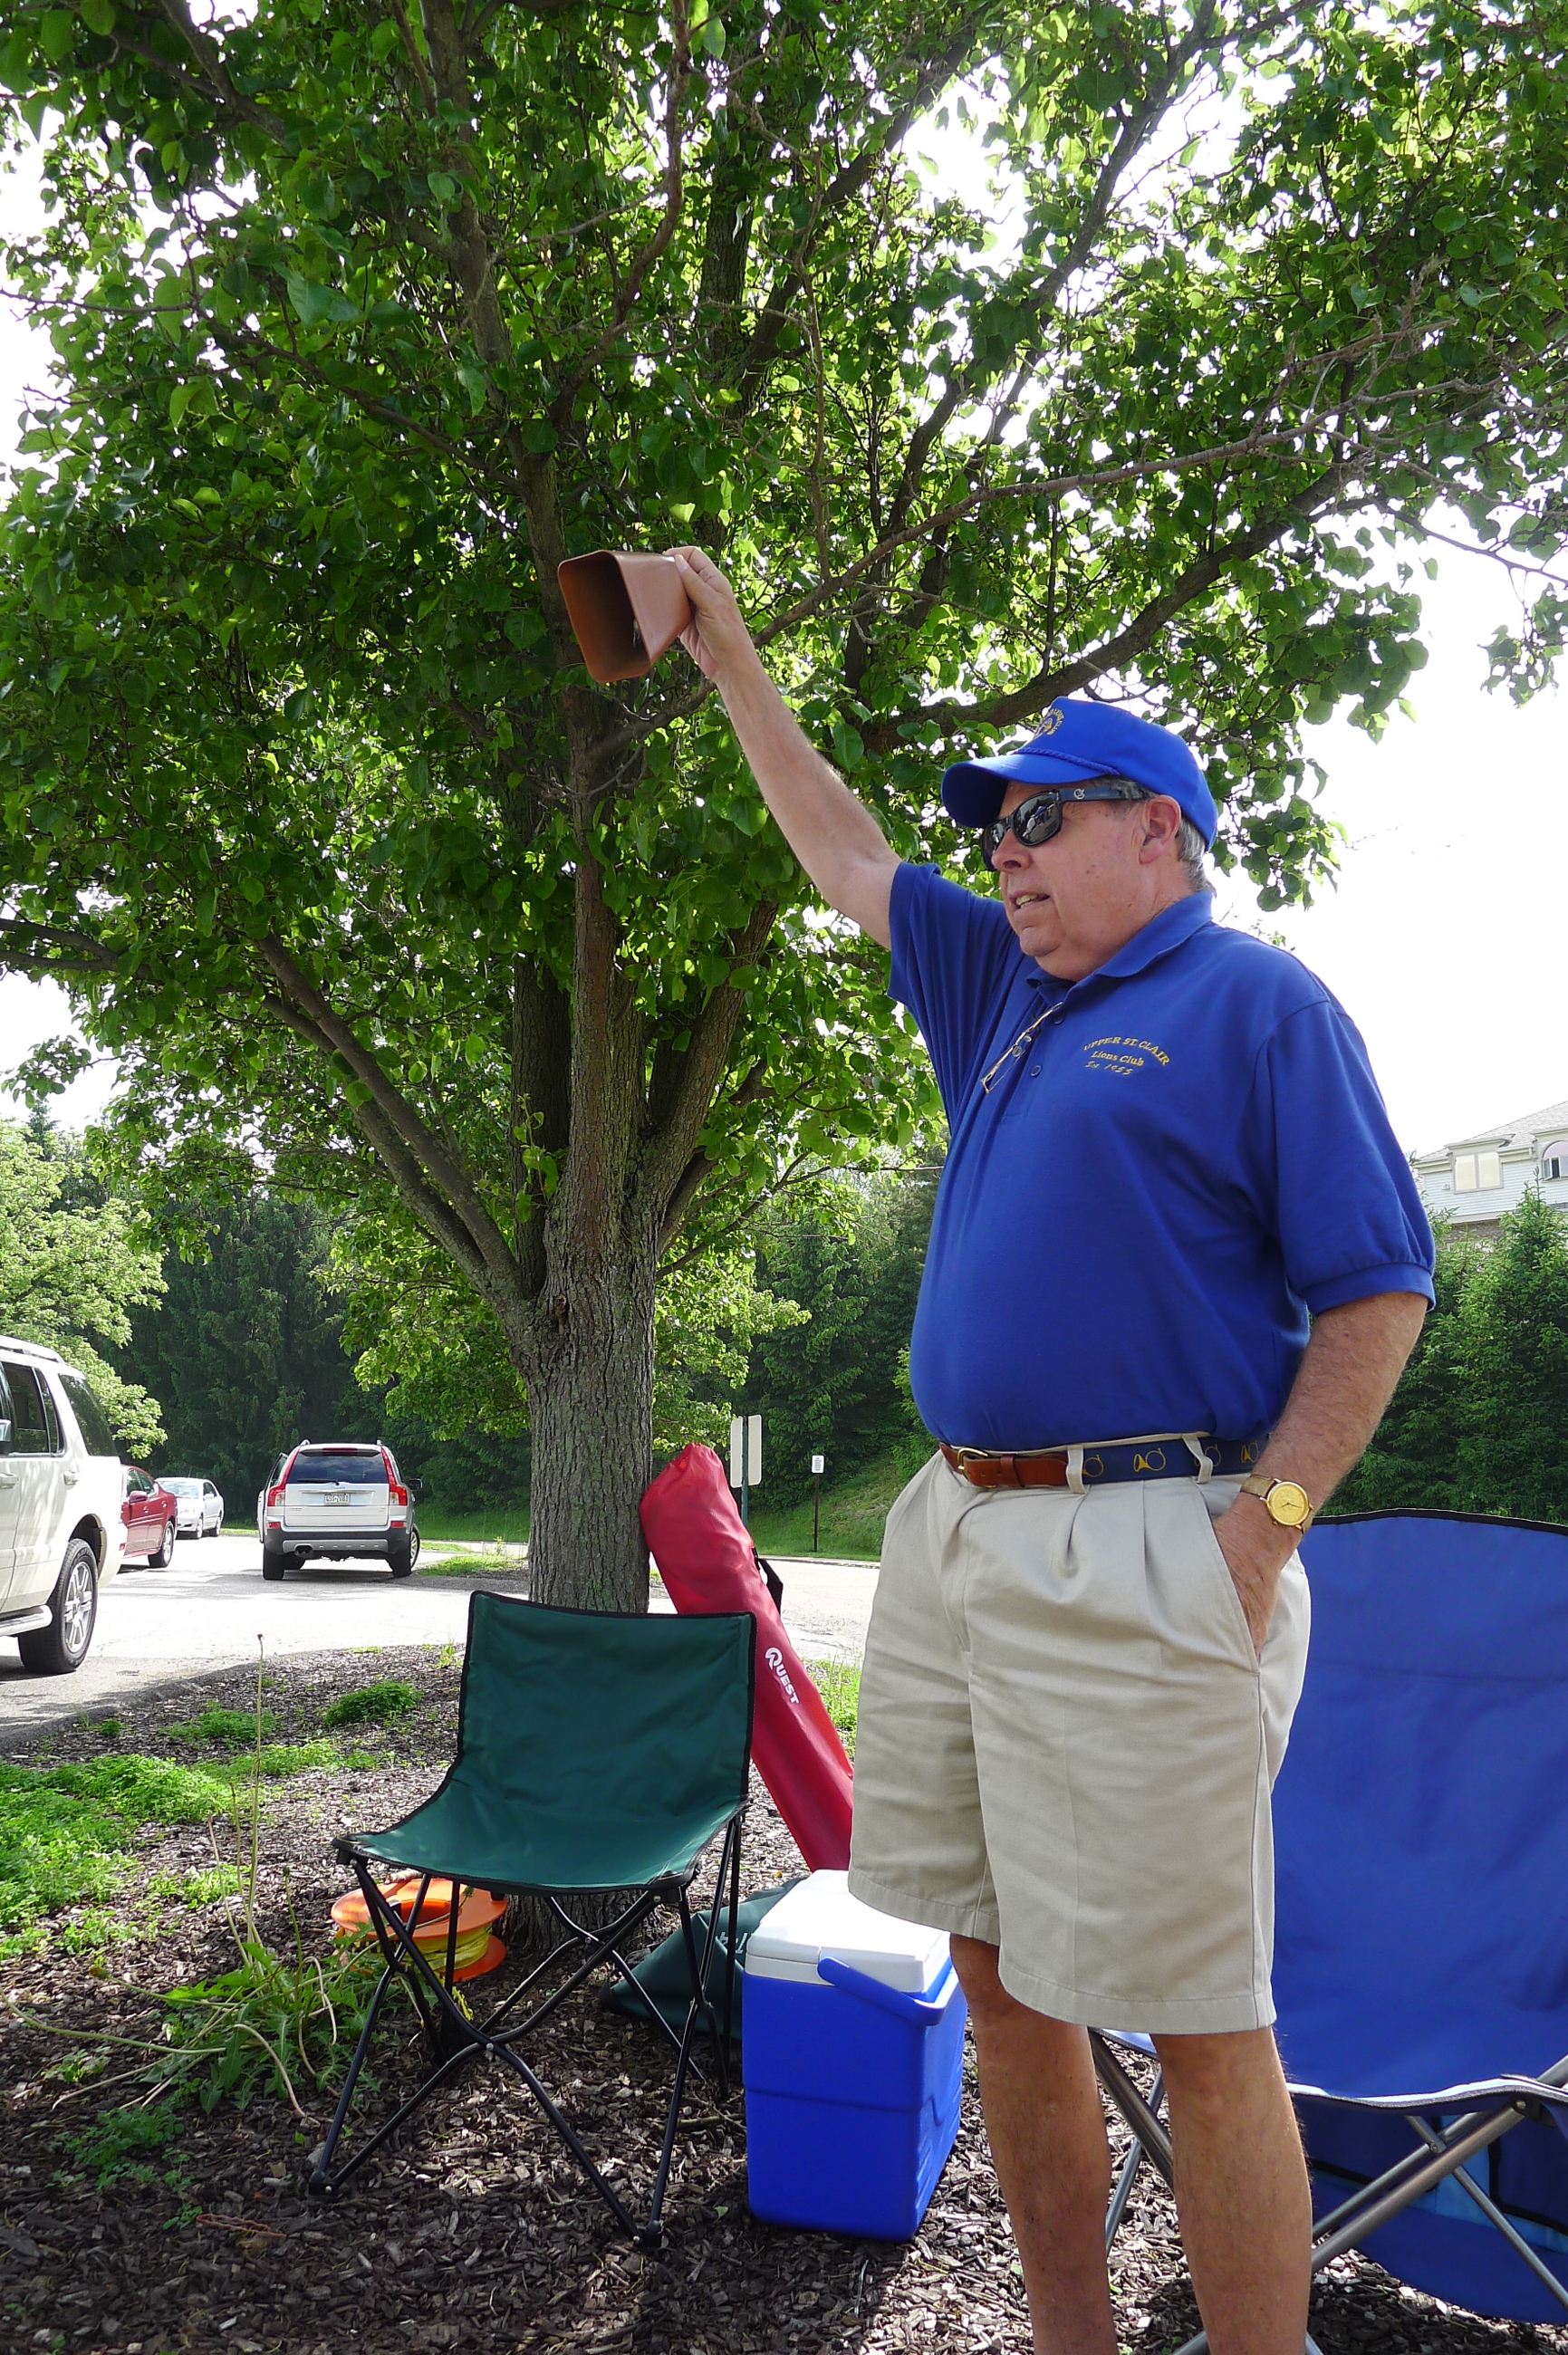 P1230812-13 Lions Club volunteer Rick Cobb rang the cowbell right at 4 p.m., signifying that customers could start buying at opening day at the Upper St. Clair Farmers Market on May 29.